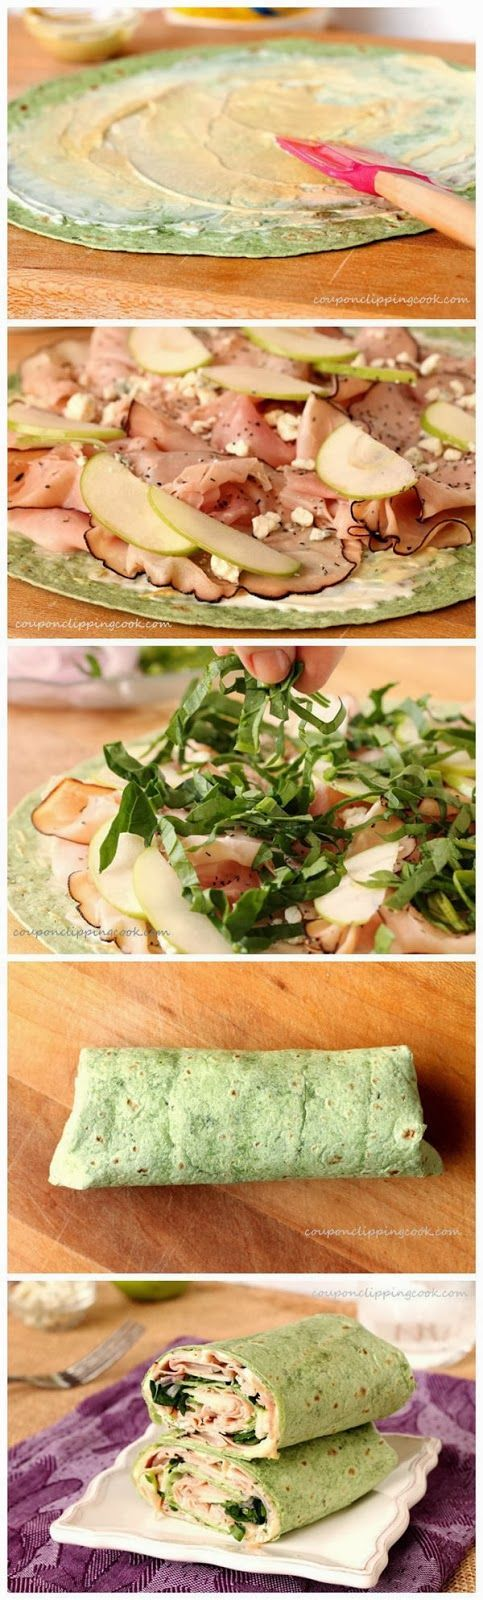 Ham, Apple and Blue Cheese Wraps - go green with these delish wraps. A colorful wrap for St. Patrick's Day.  Ingredients: 2 large Garden Spinach Herb Wraps (or your favorite wrap or flour tortilla) ¼